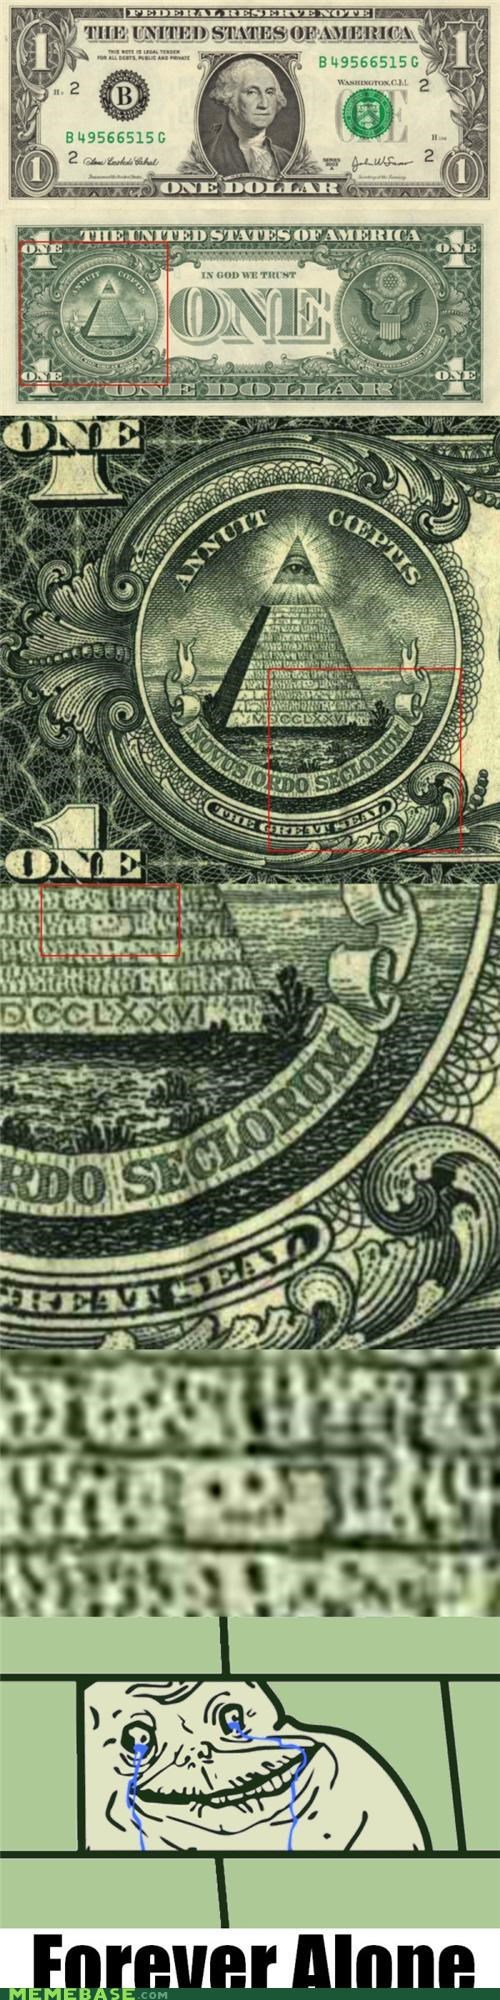 dollar bill forever alone freemasons hiding in lain site pyramid secrets - 4485047808